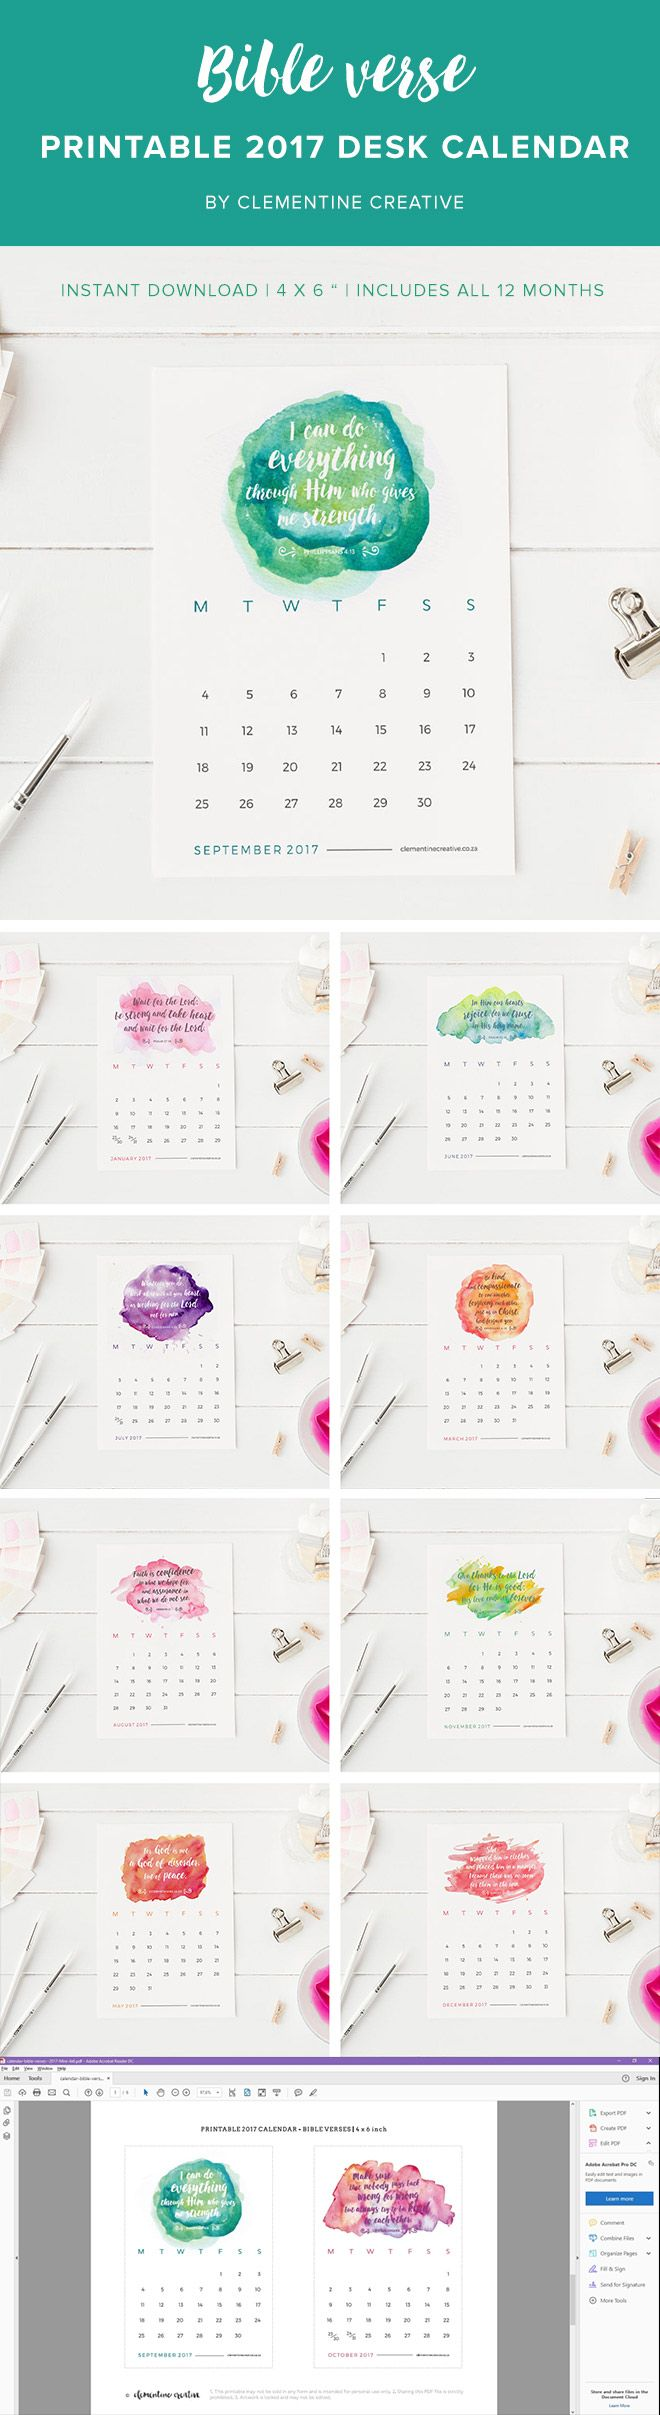 Be inspired every day with this printable 2017 desk calendar with a new Bible verse for each month. Download instantly, print, and decorate your desk!